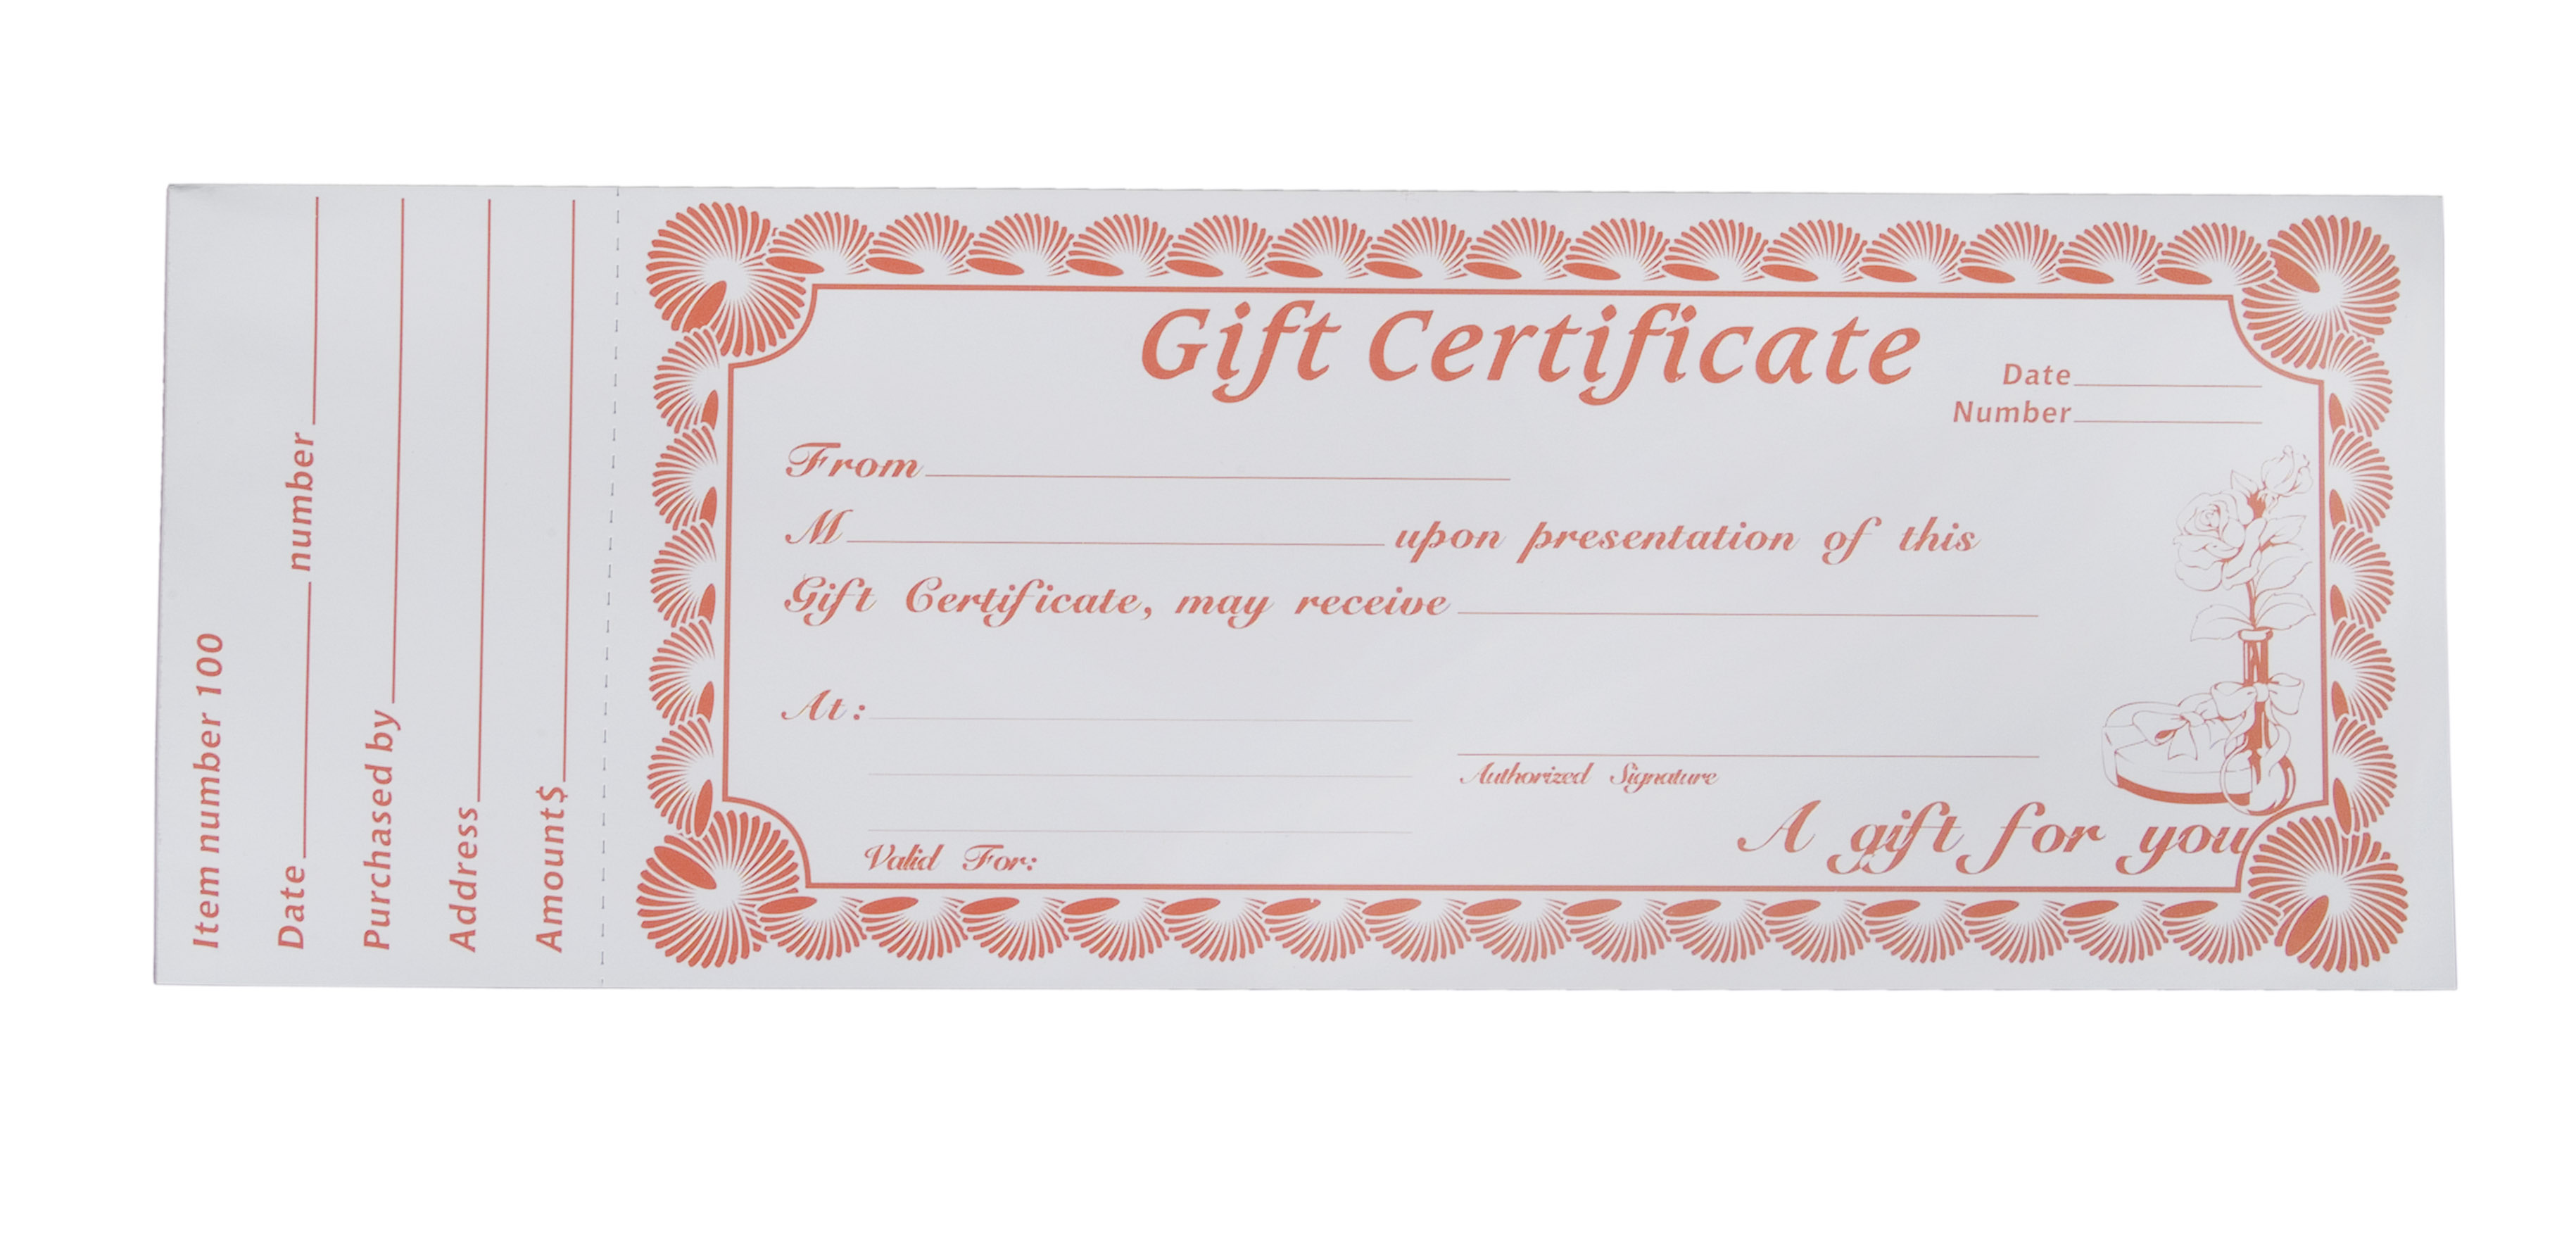 Generic Gift Certificate Templates  MyCreativeShop